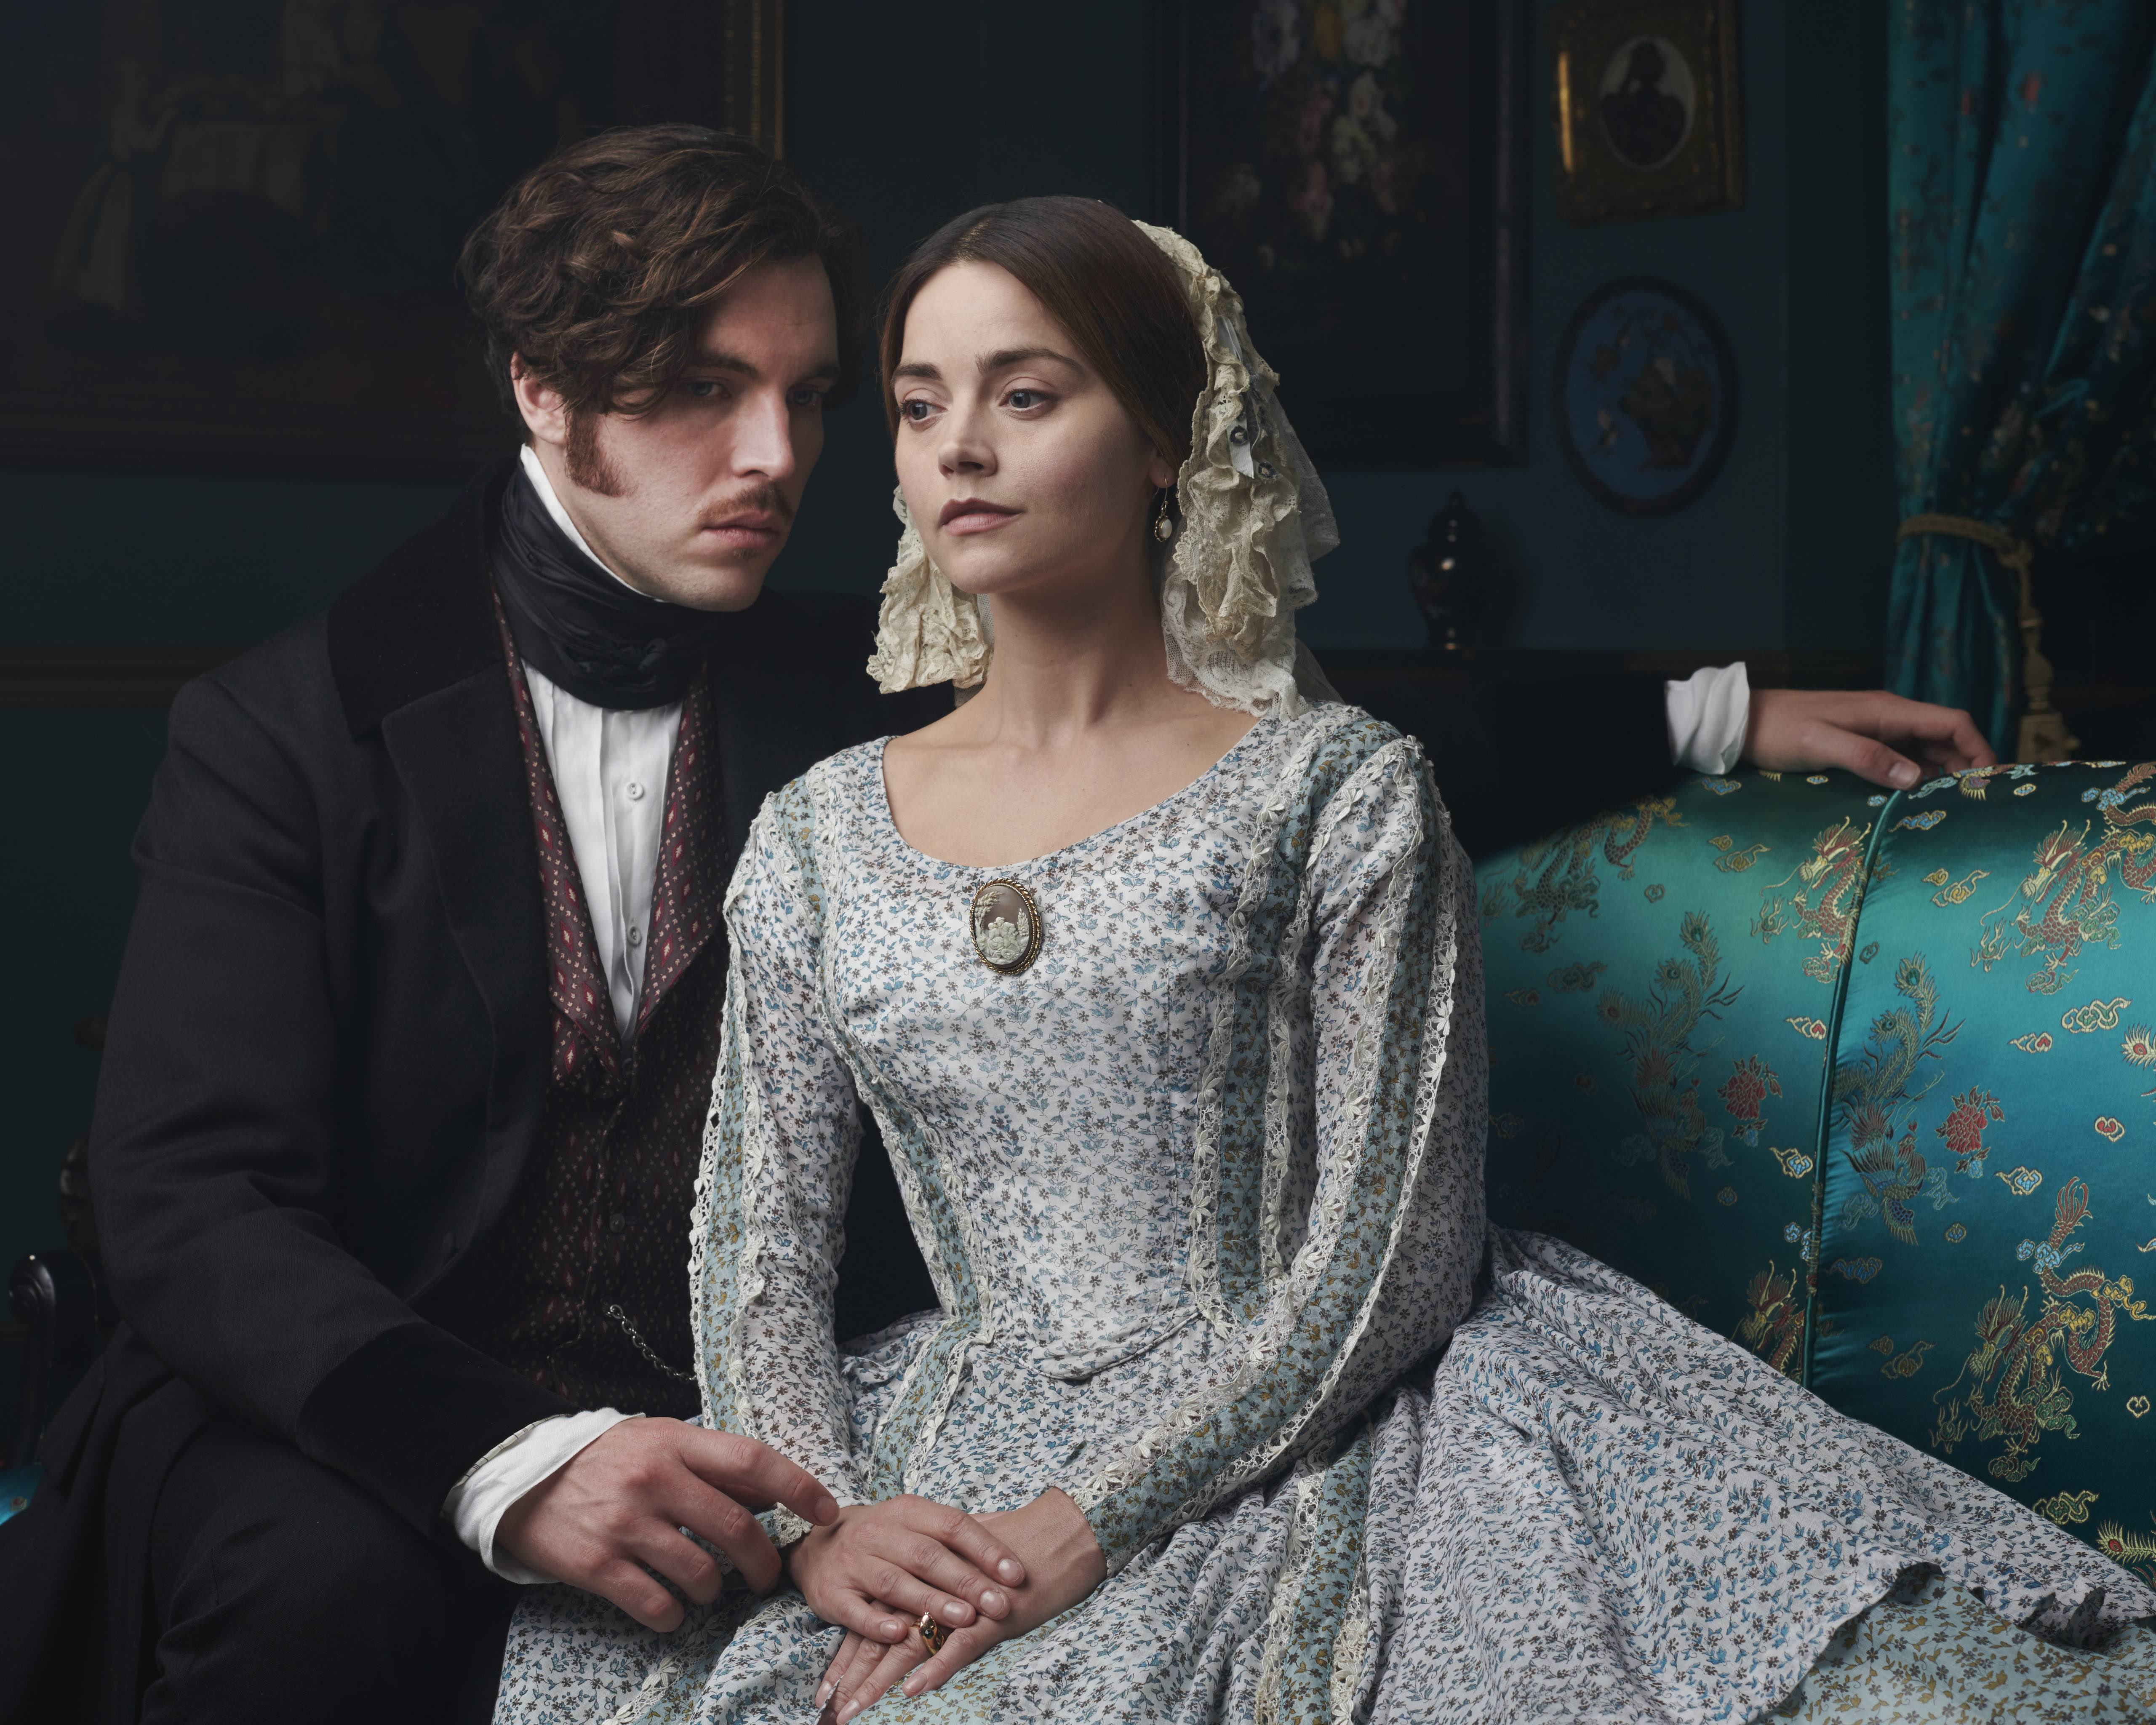 Tom Hughes as Prince Albert and Jenna Coleman as Queen Victoria sitting on a couch